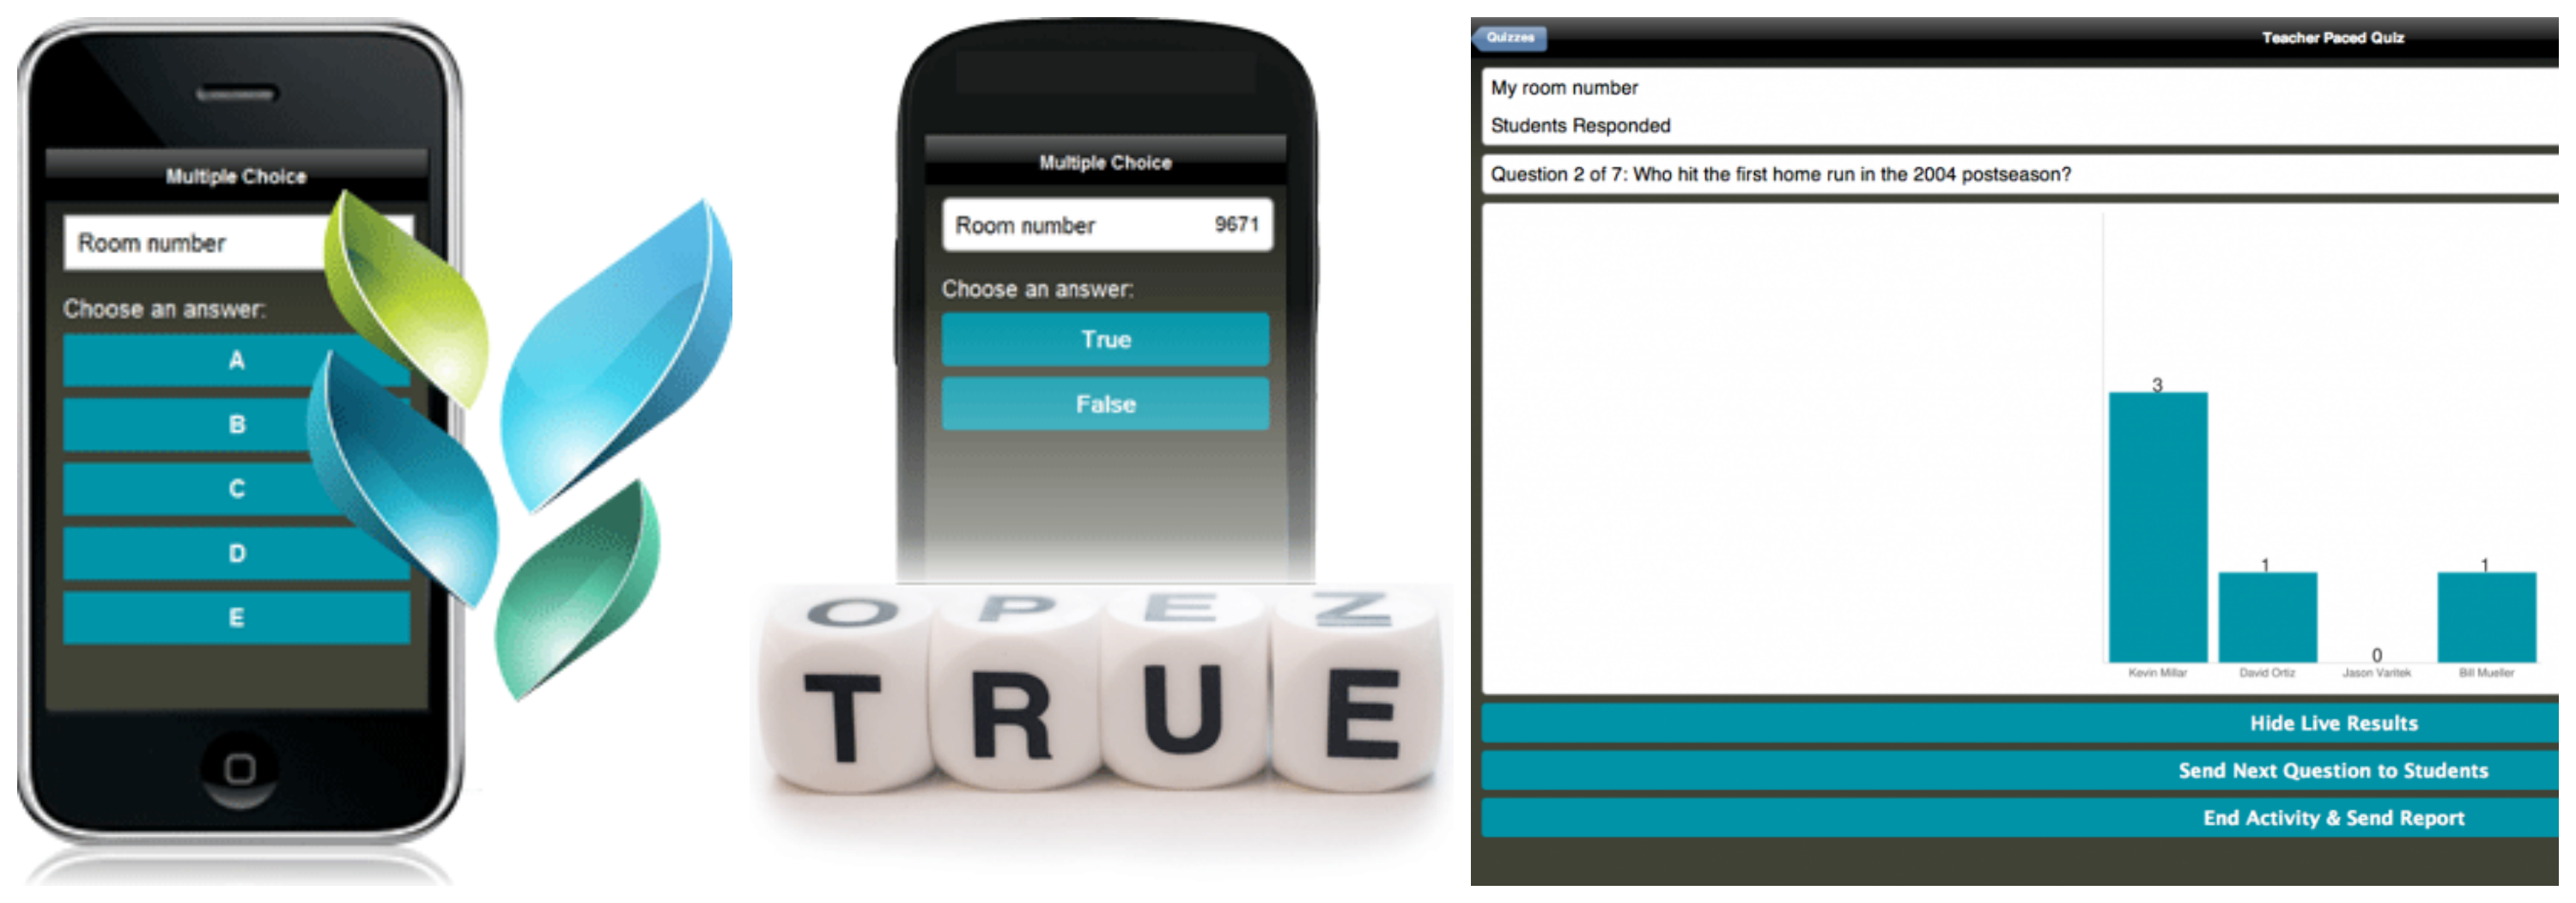 L'application Socrative nourrit-elle utilement l'enseignement collaboratif?